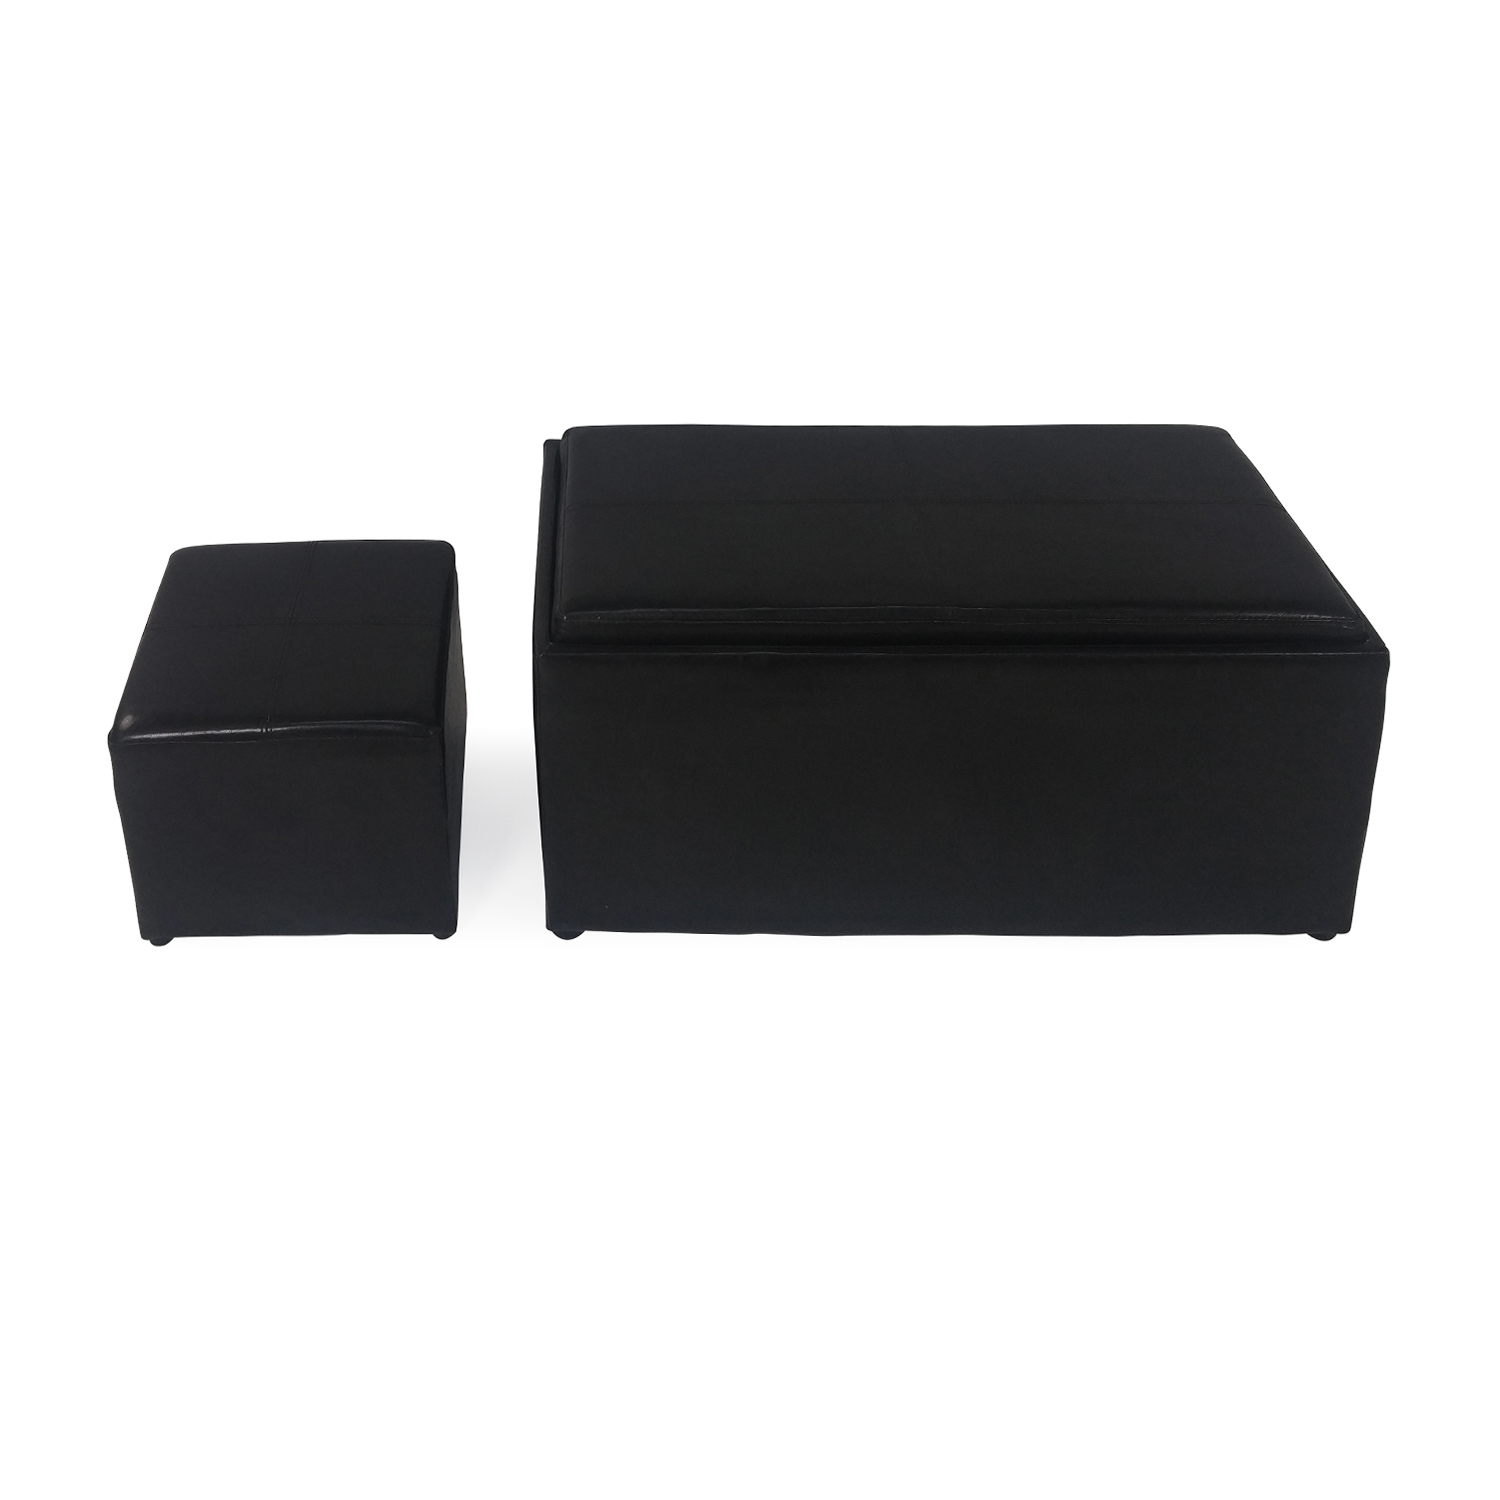 Target Storage Ottoman and Footstool Set sale